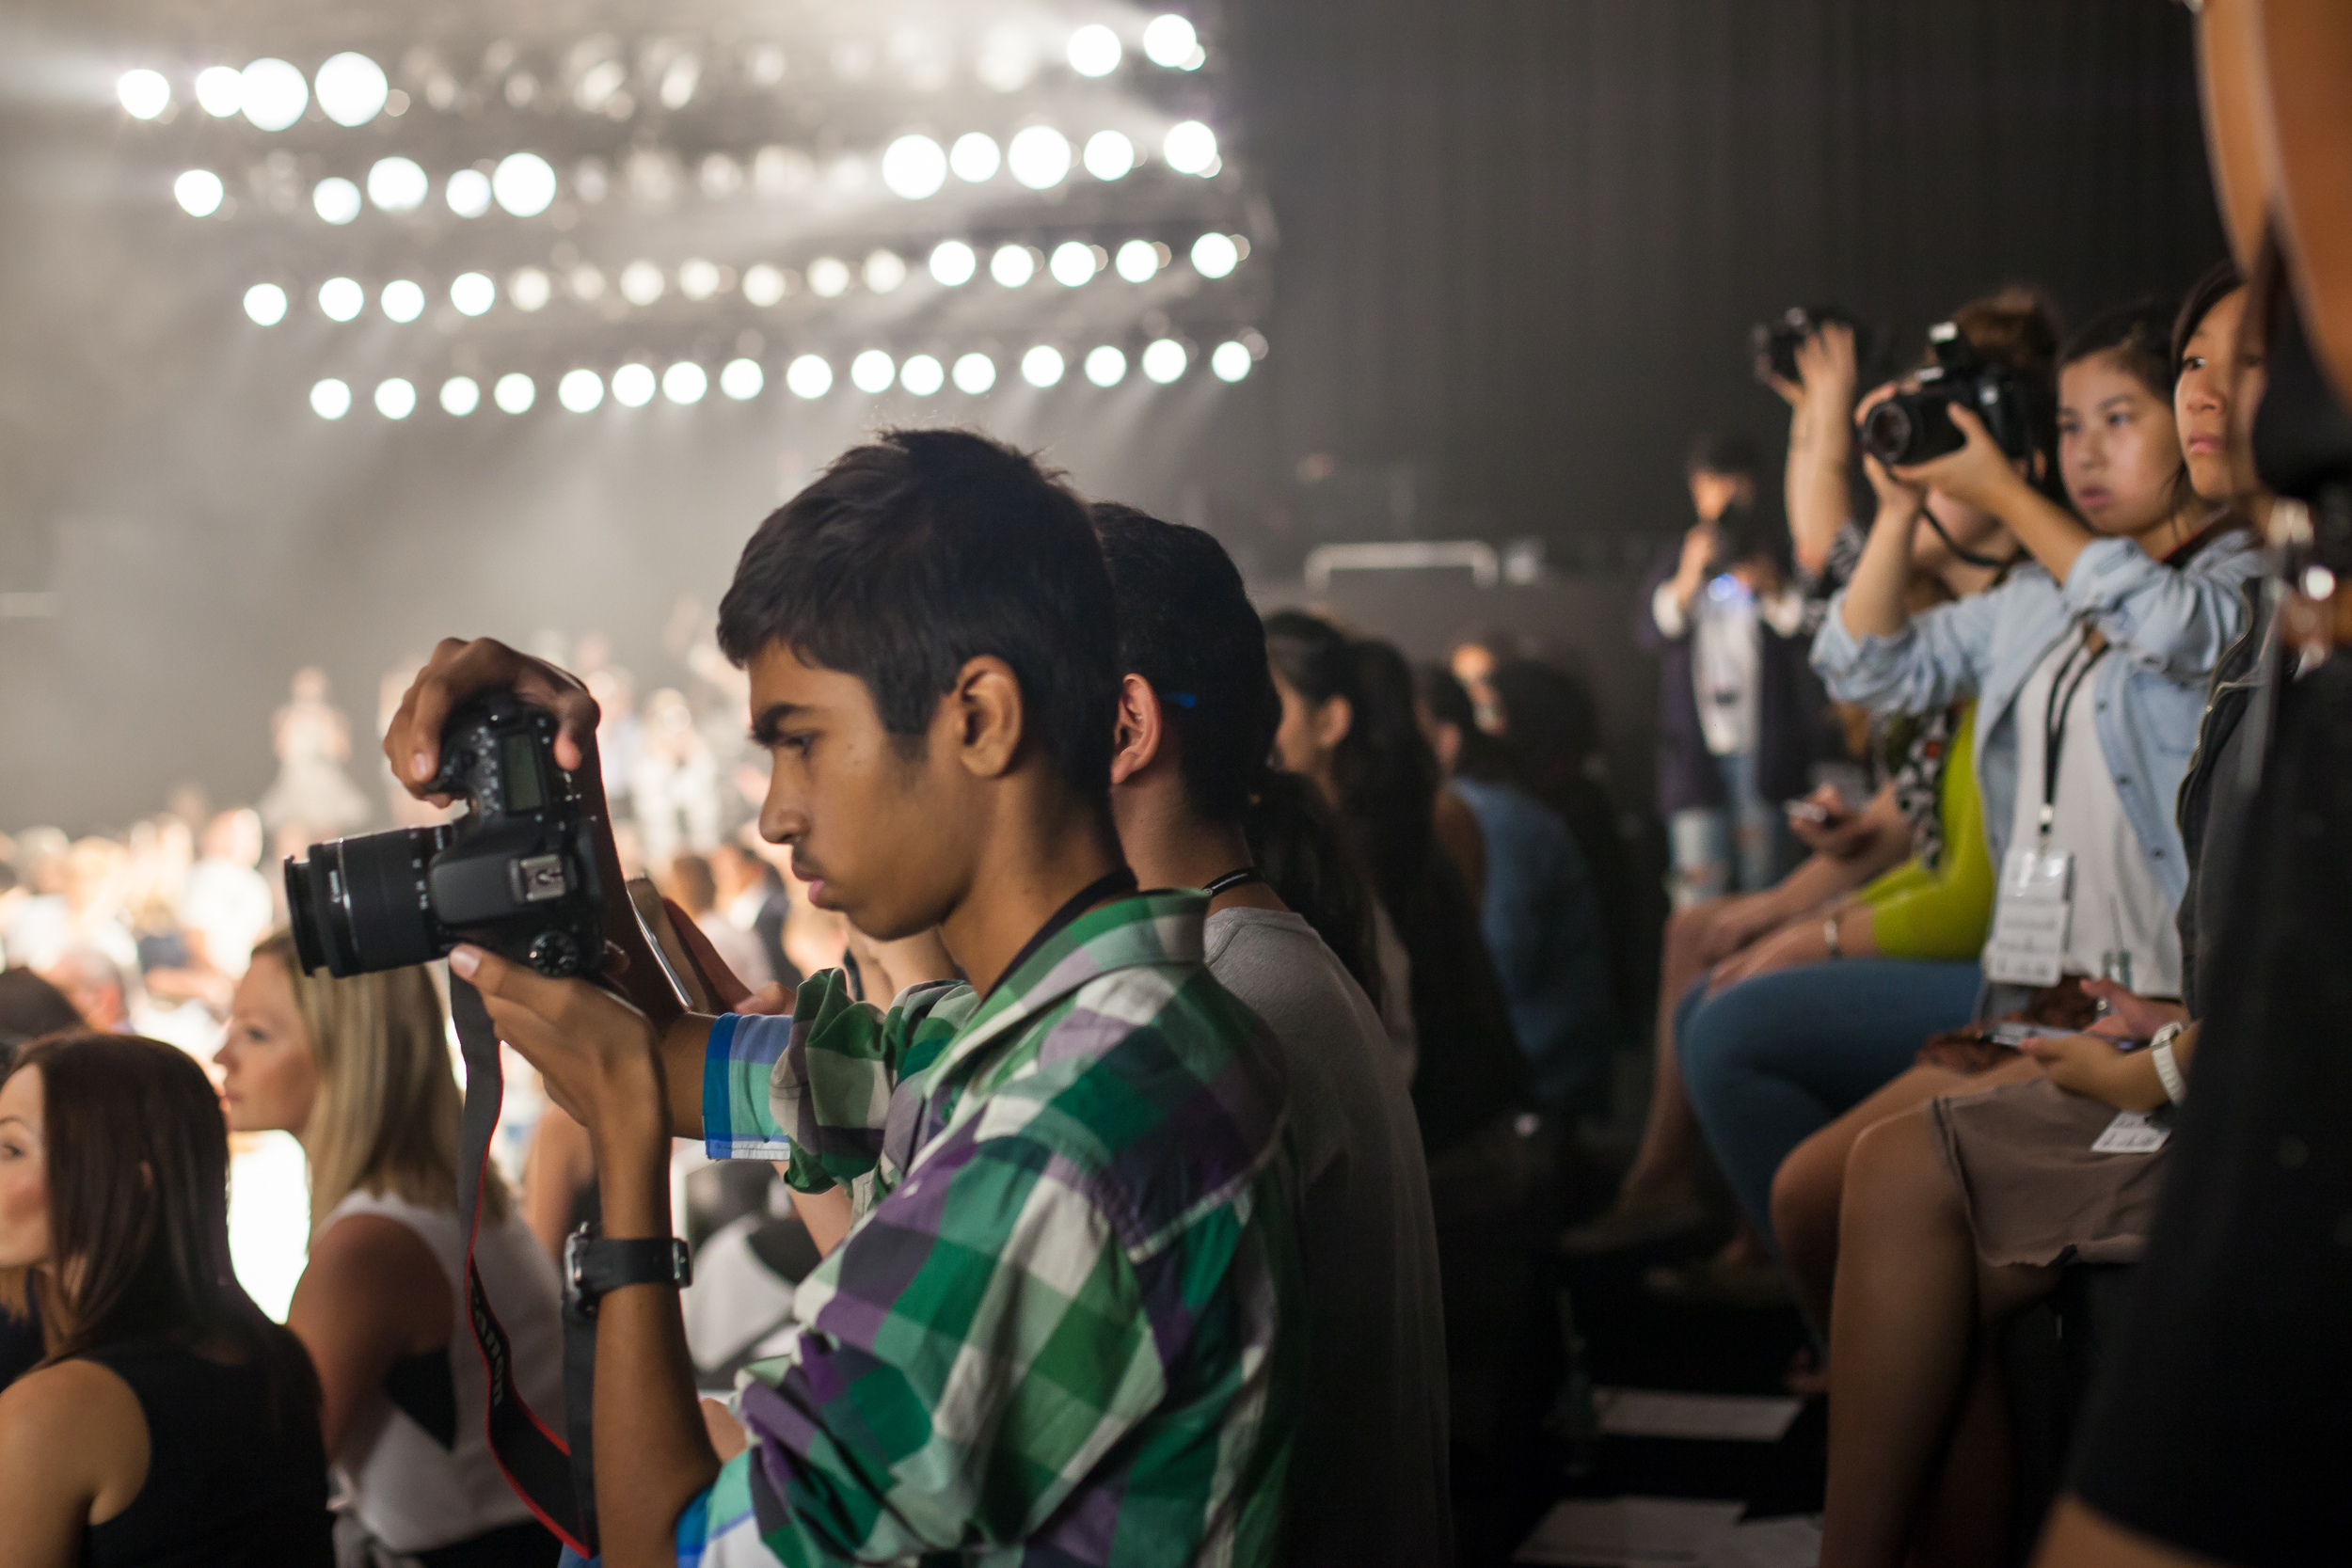 Shooting on the runway. Thanks Cannon for donating the cameras!